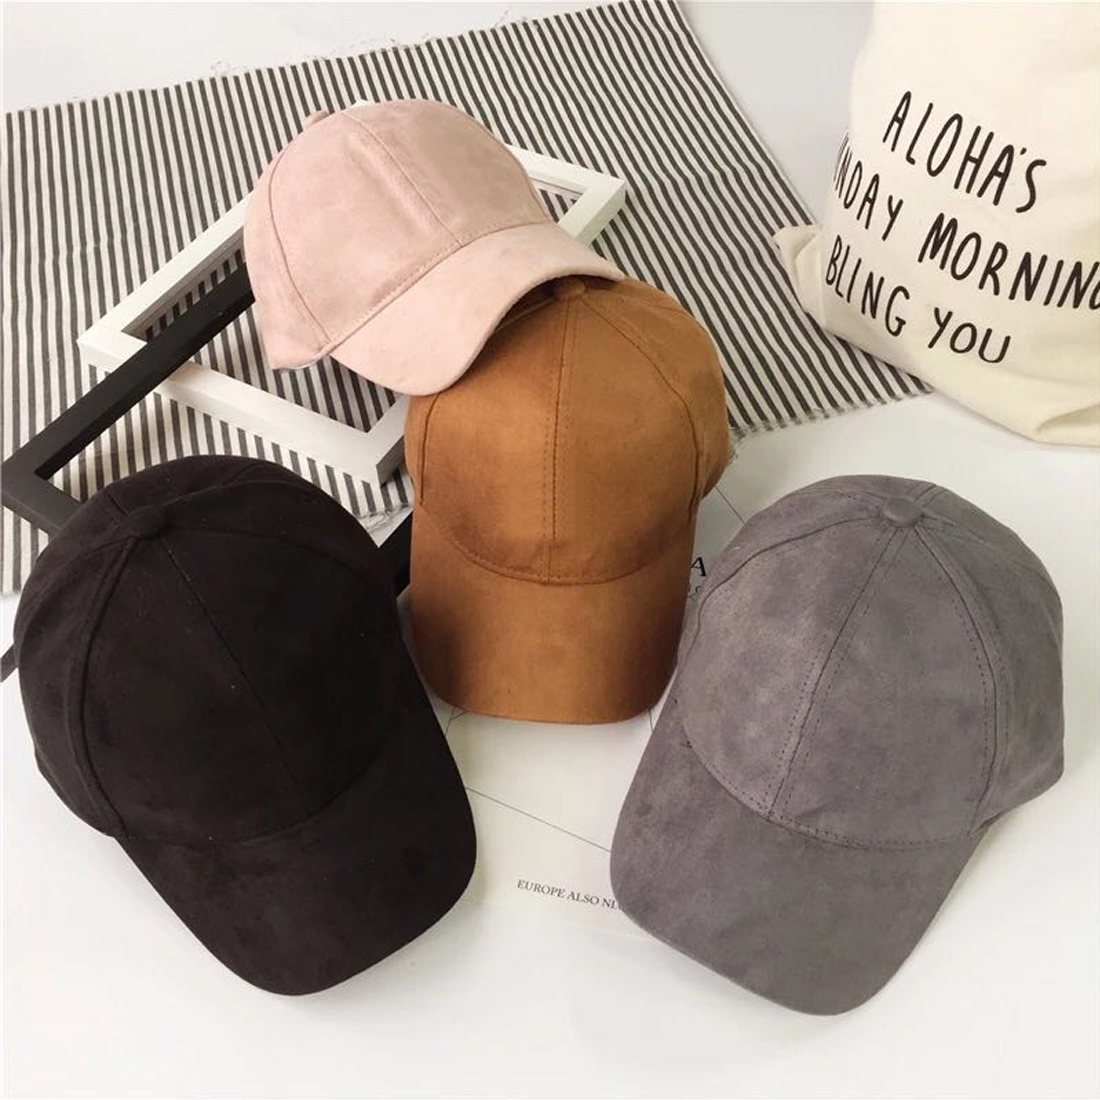 Wholesale FULL Snapback Cap Women Fashion Brand Bone Hip Hop Caps Men Casquette Suede Hats Black Pink Baseball Cap hot sell new autumn fashion men baseball caps snapbacks hip hop hats for women men bone letter casual casquette caps